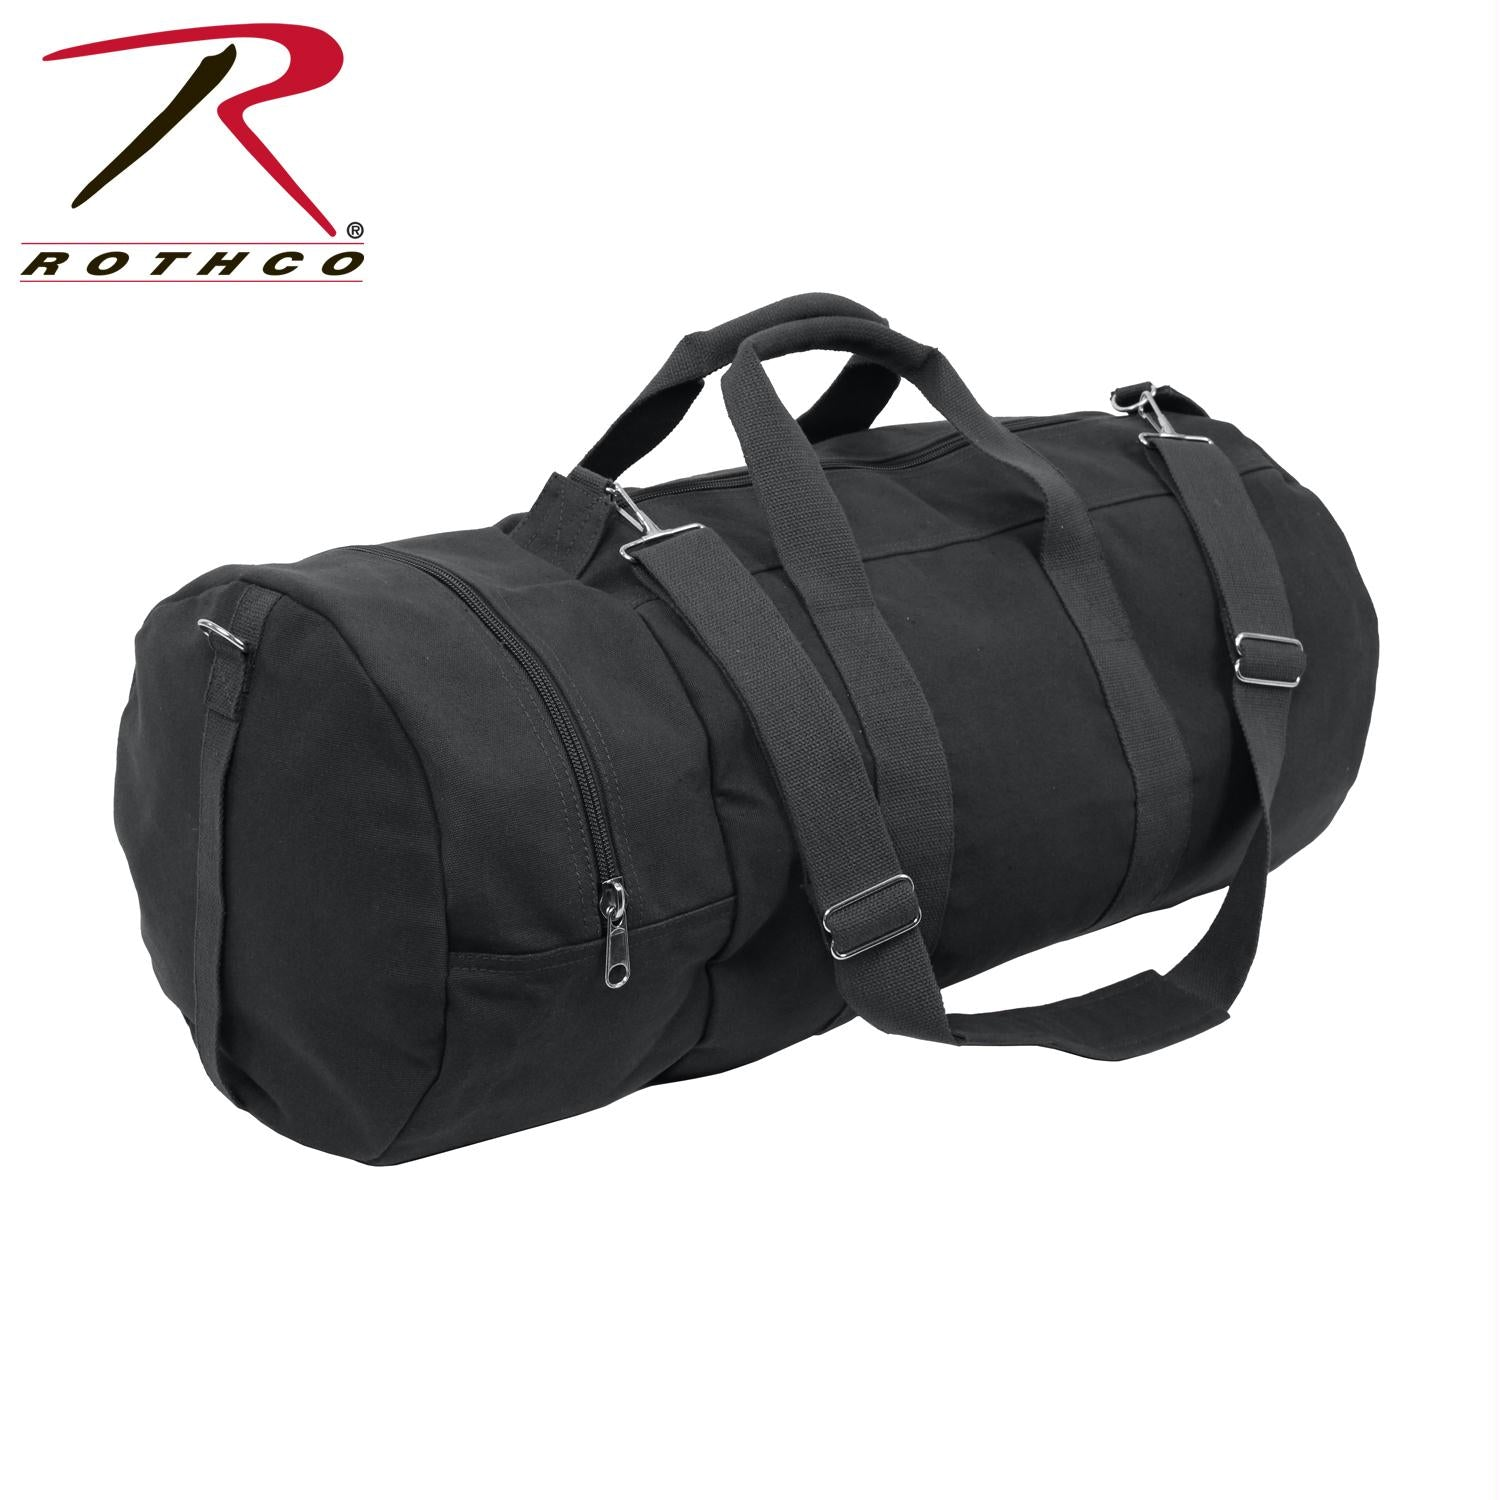 Rothco Canvas Double-Ender Sports Bag - Black